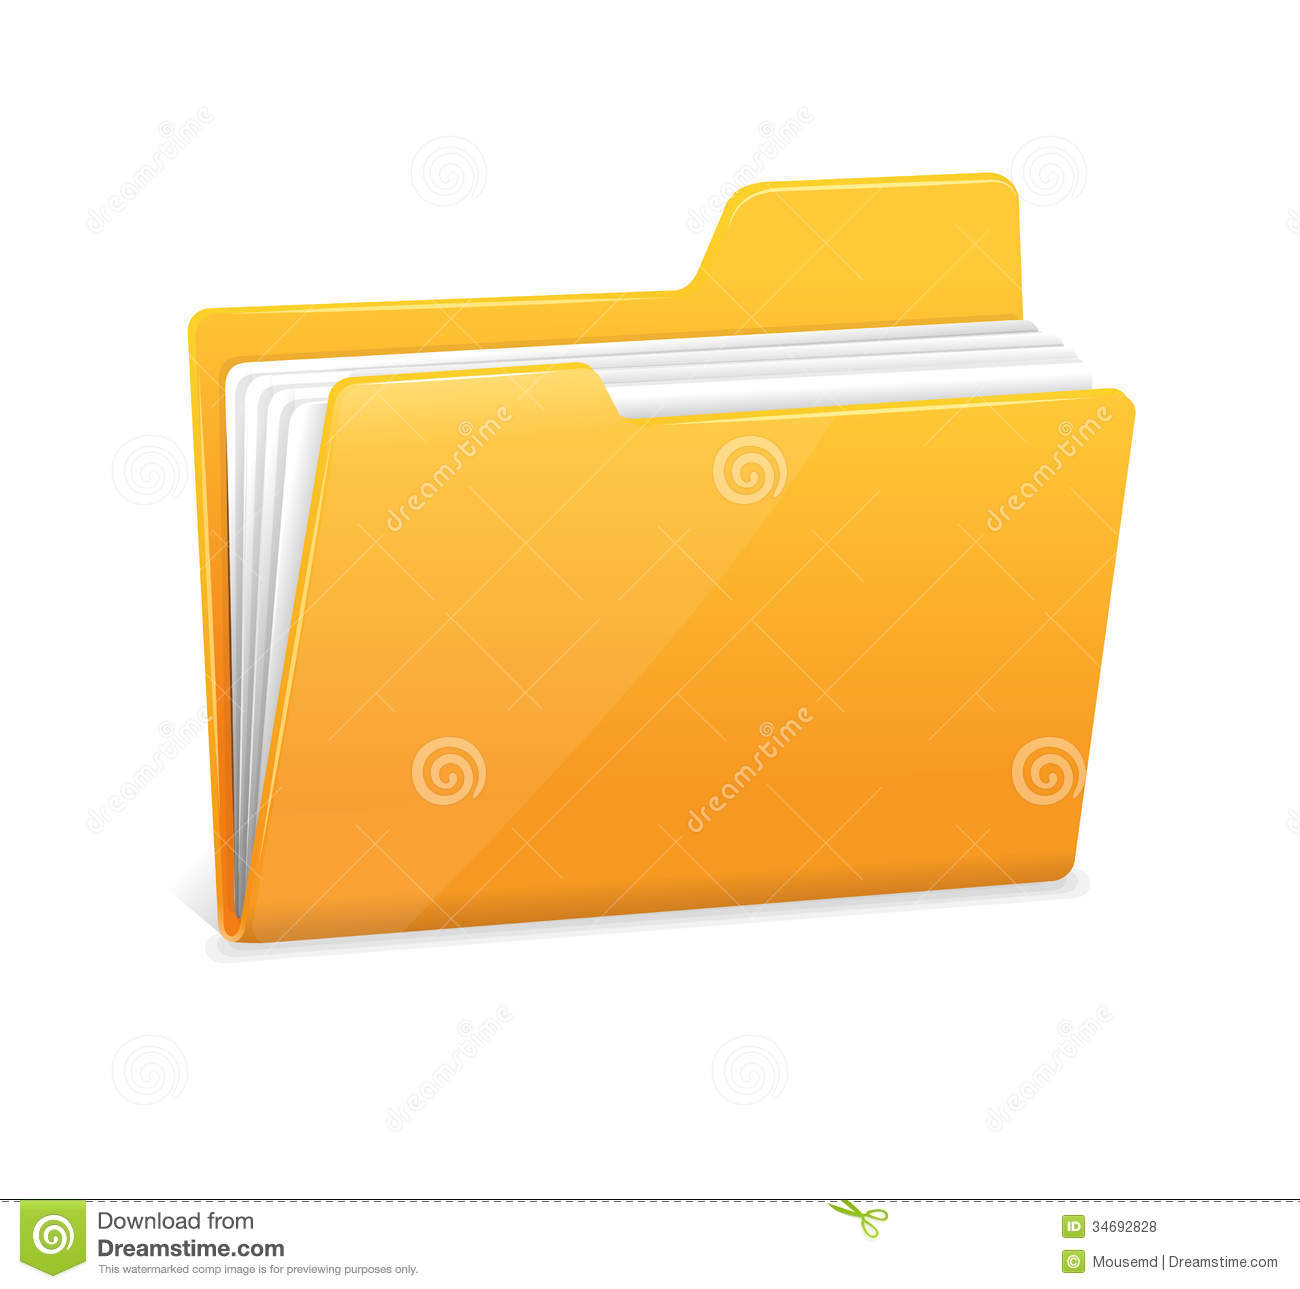 how to read documents and settings folder hp pc